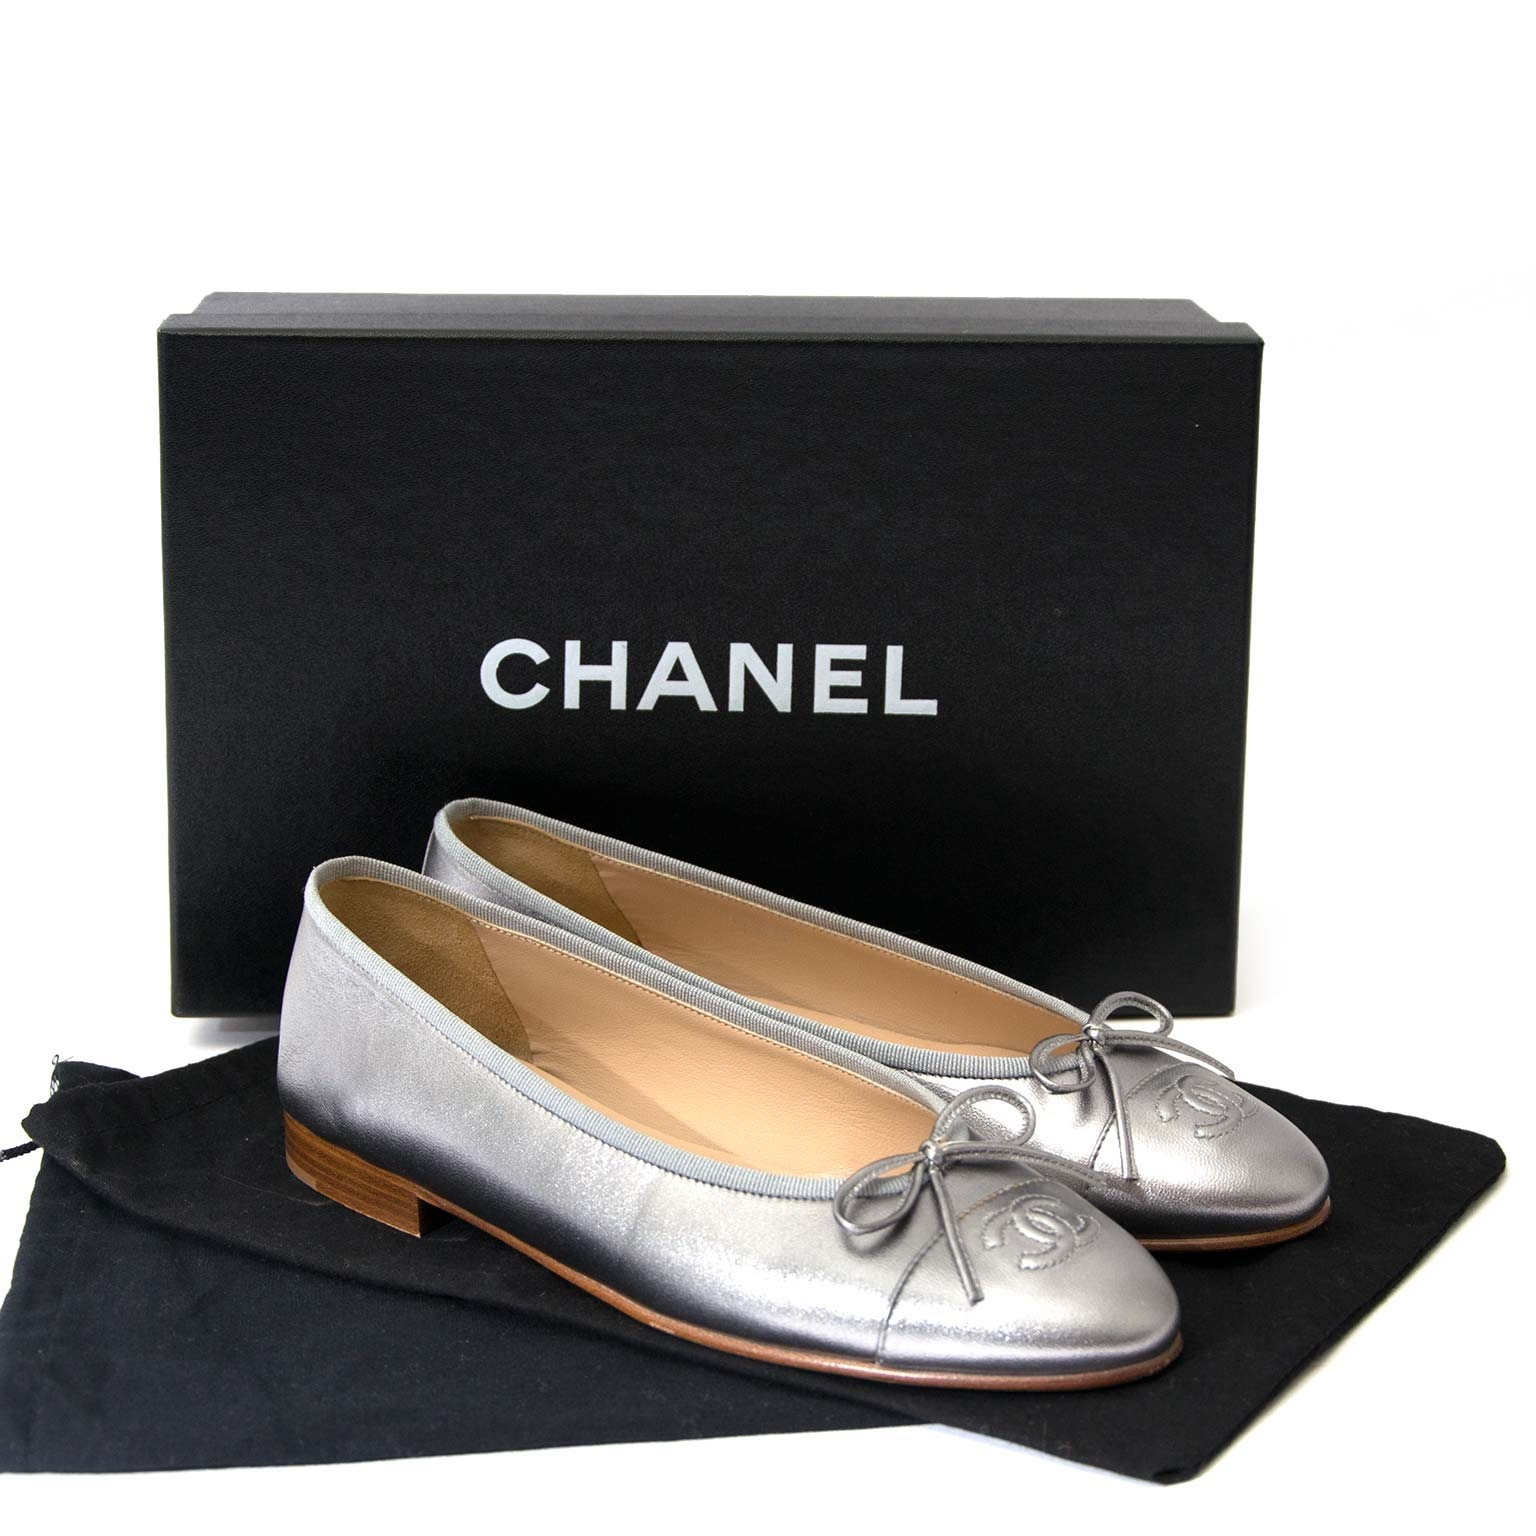 Chanel CC Silver Leather Ballerina Flats - Size 38 Buy authentic designer Chanel secondhand shoes at Labellov at the best price. Safe and secure shopping. Koop tweedehands authentieke Chanel schoenen bij designer webwinkel labellov.